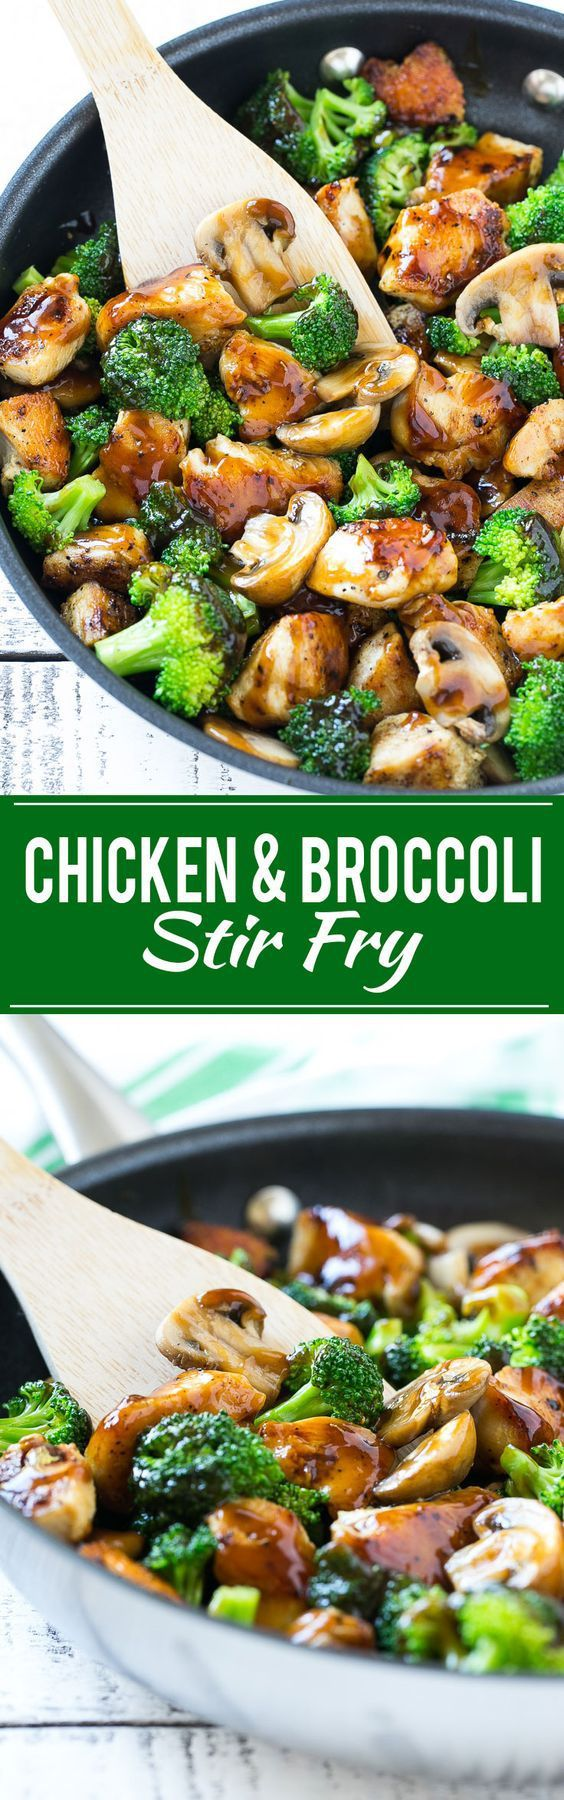 30 Minute Chicken and Broccoli Stir Fry Recipe via Dinner at the Zoo - This recipe for chicken and broccoli stir fry is a classic dish of chicken sauteed with fresh broccoli florets and coated in a savory sauce. You can have a healthy and easy dinner on the table in 30 minutes! - The BEST 30 Minute Meals Recipes - Easy, Quick and Delicious Family Friendly Lunch and Dinner Ideas